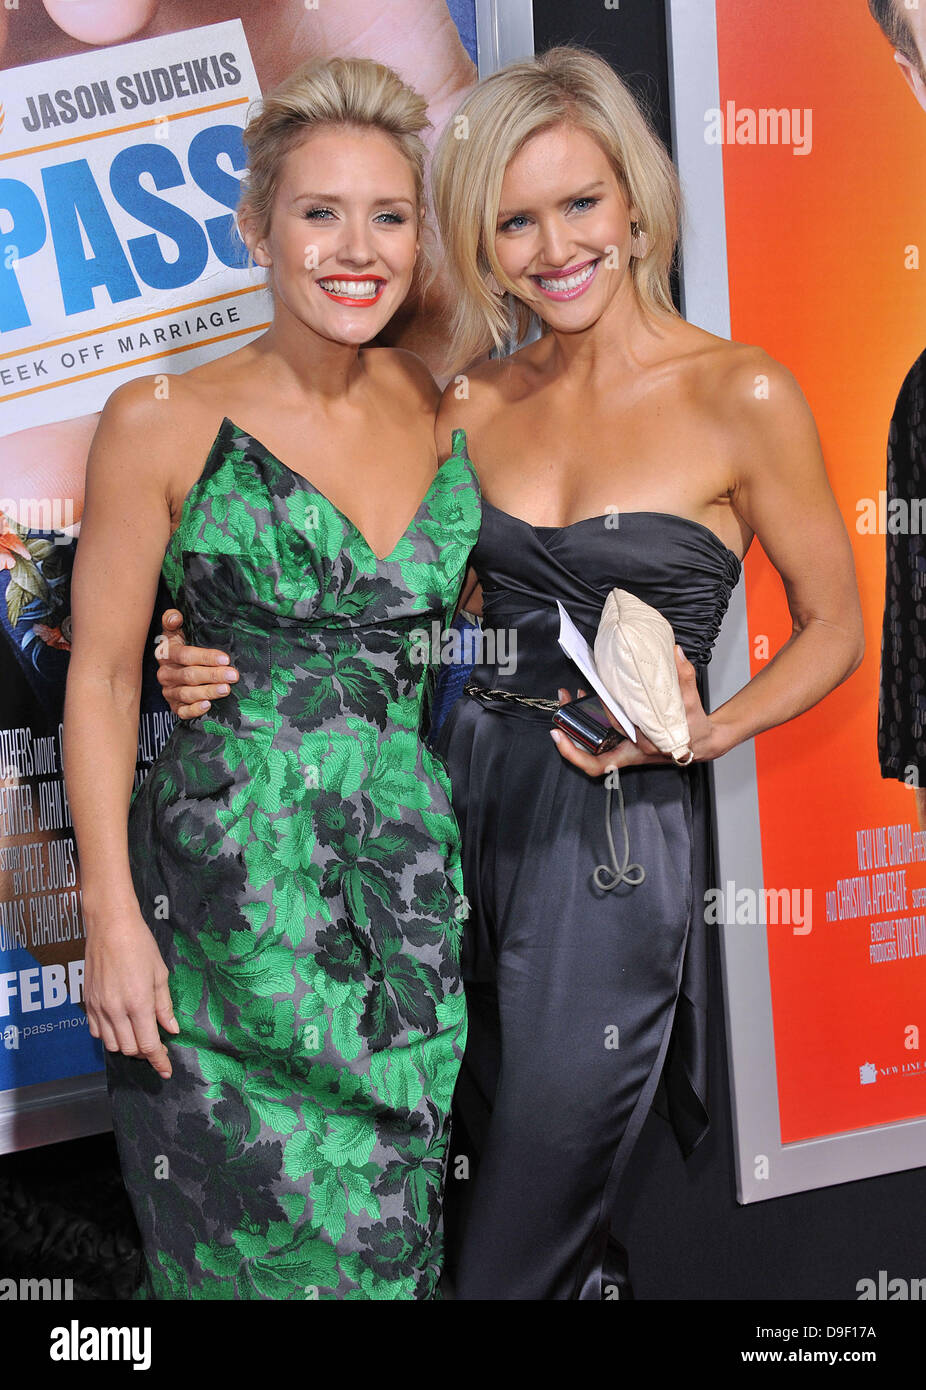 Gallery images and information nicky whelan hall pass gif - Nicky Whelan And Her Sister Los Angeles Premiere Of Warner Bros Pictures Hall